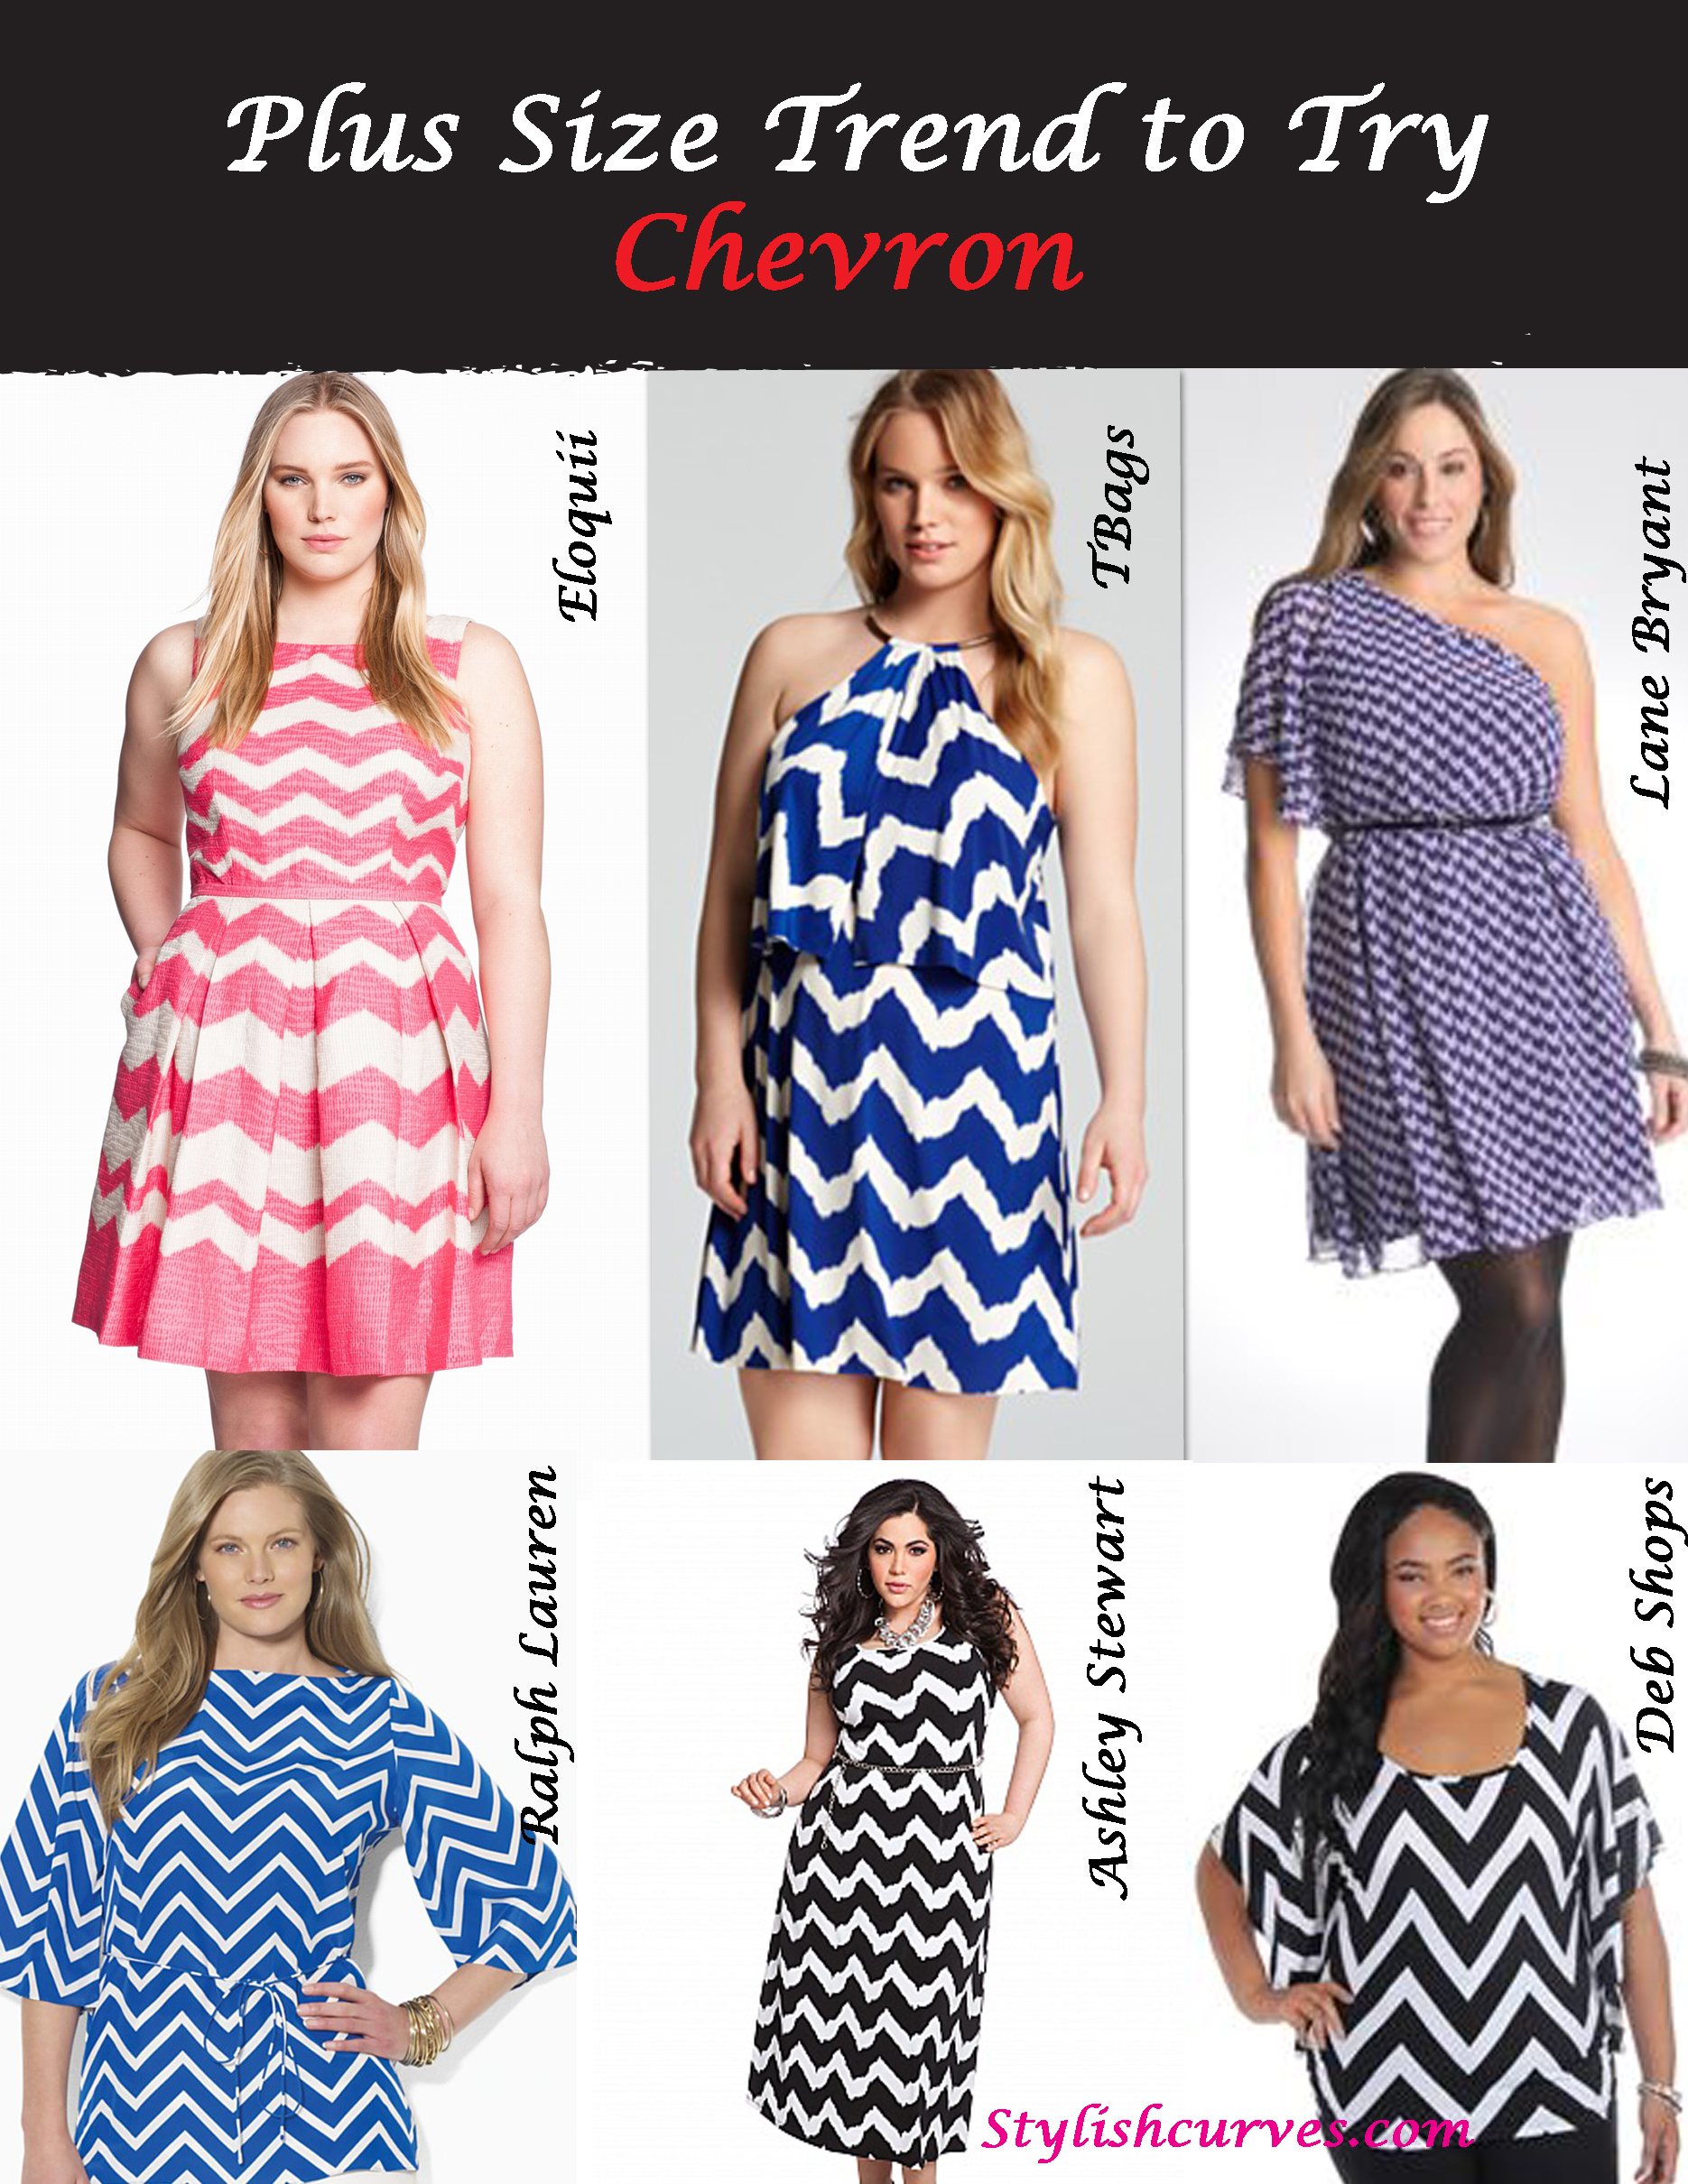 PLUS SIZE TREND TO TRY: CHEVRON | Stylish Curves